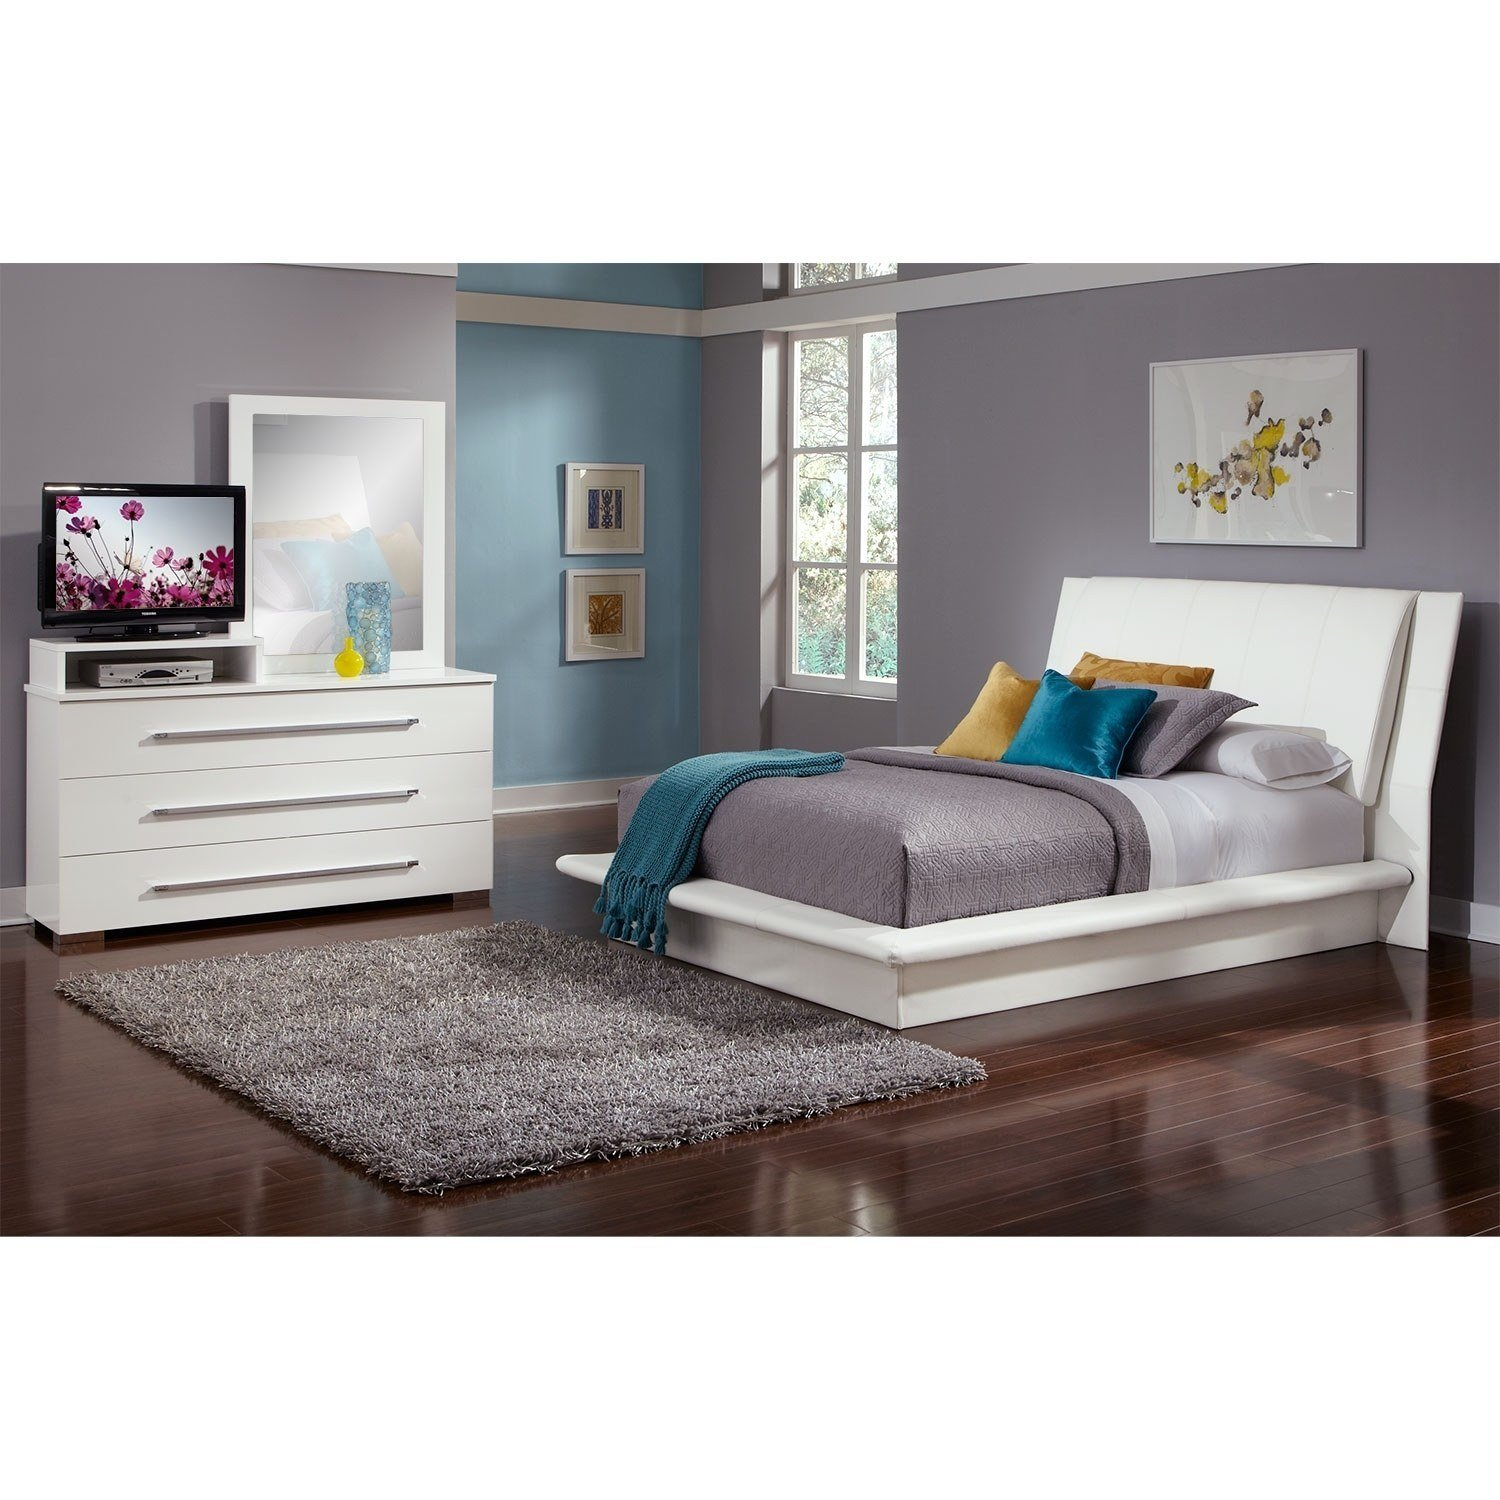 Best Dimora 5 Piece Queen Upholstered Bedroom Set With Media With Pictures